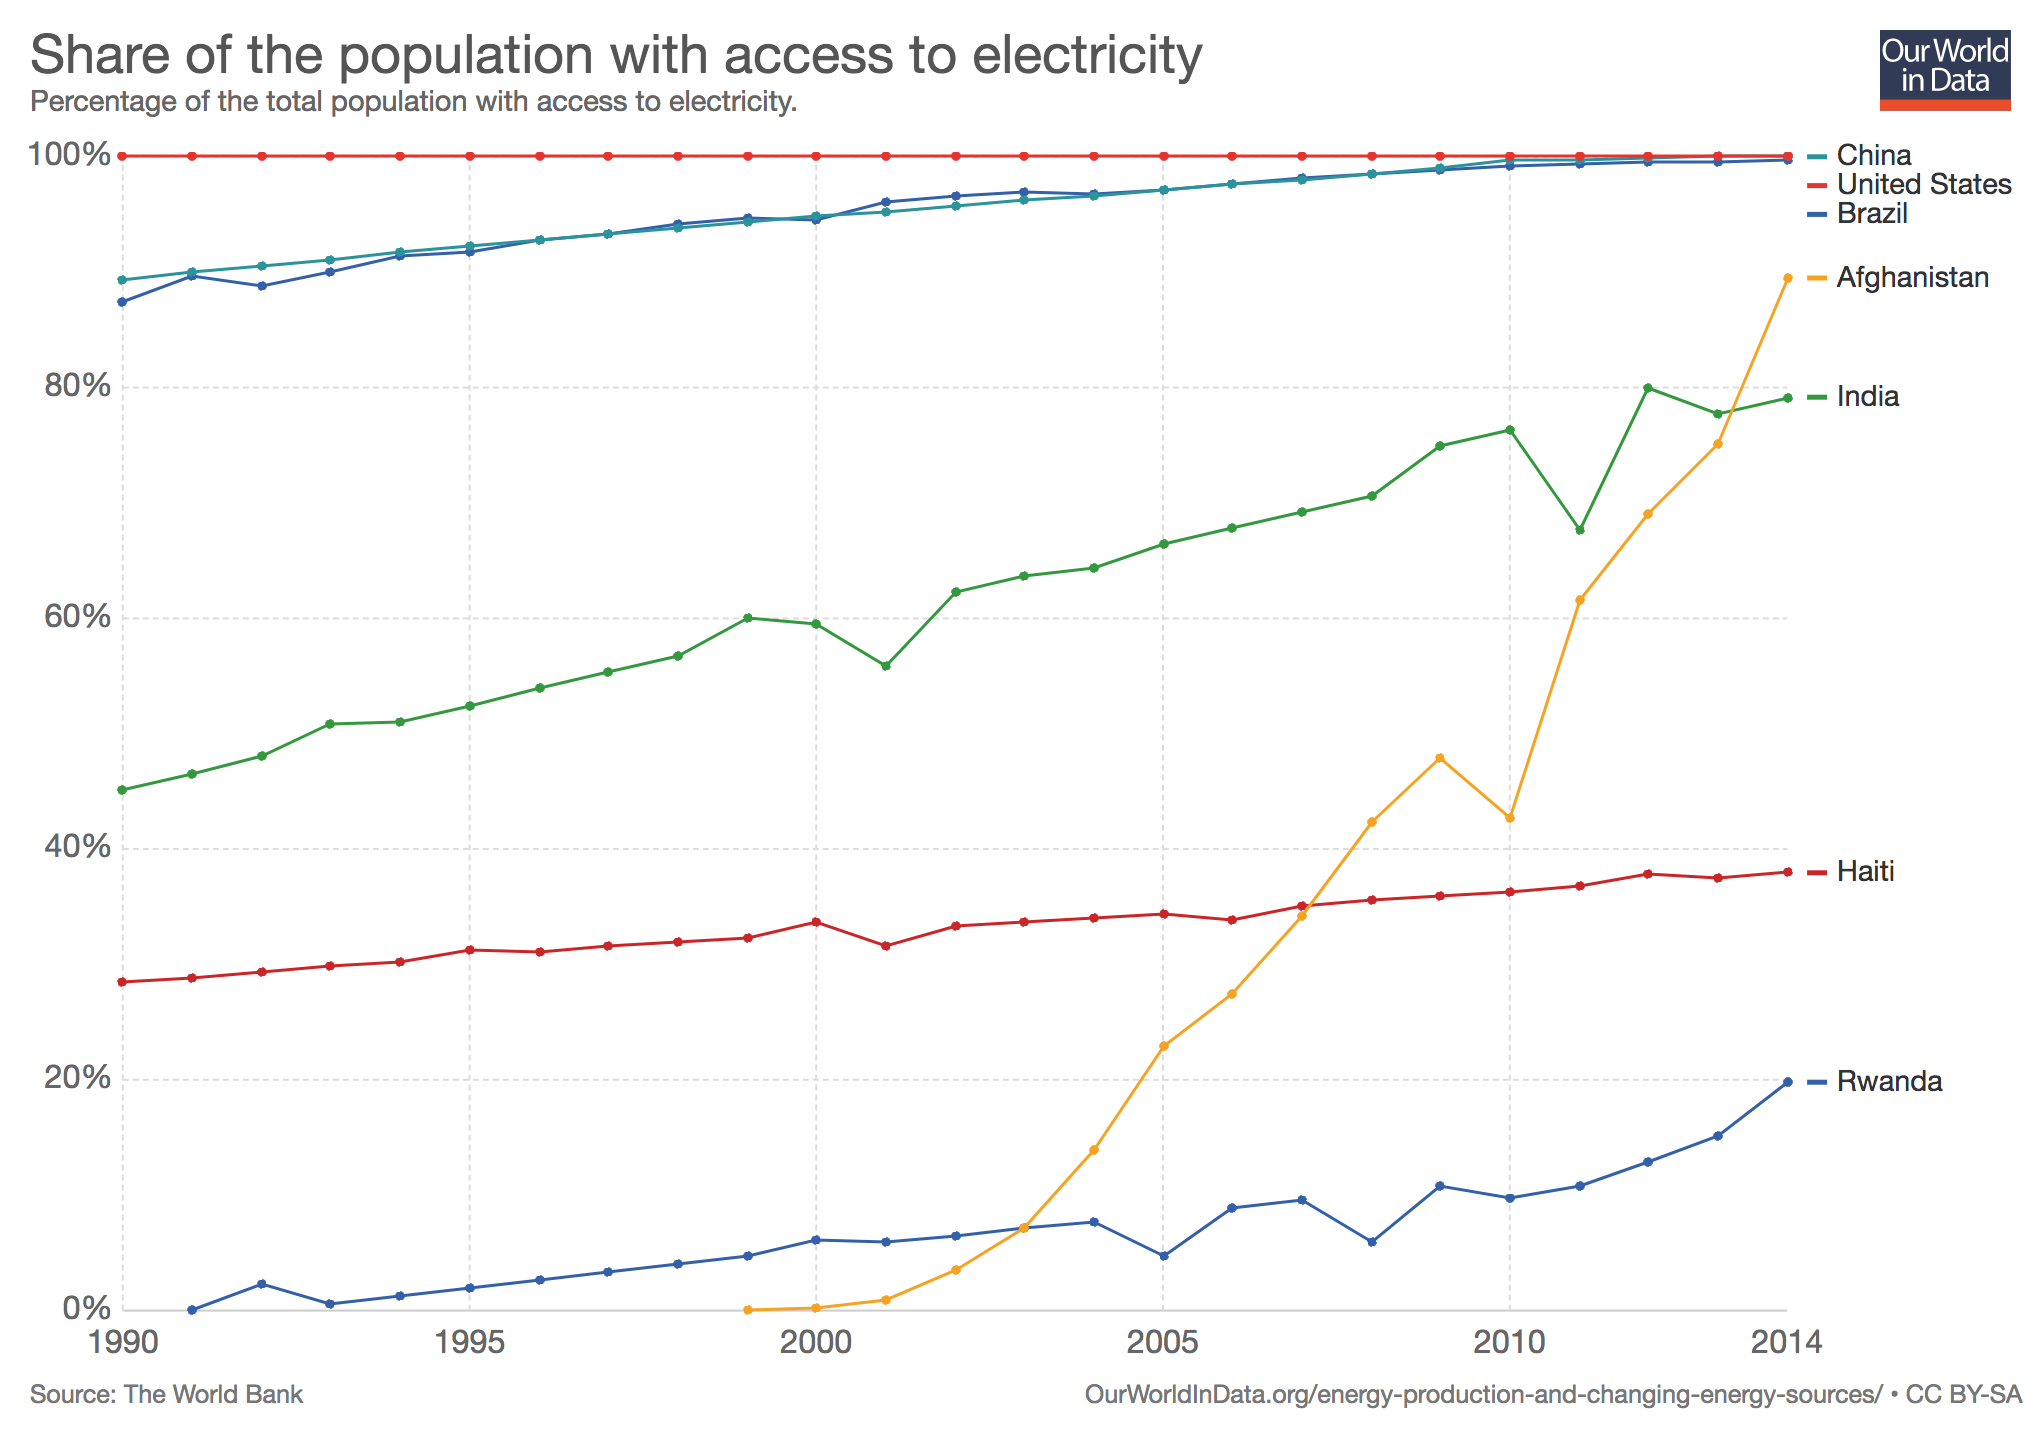 share-of-the-population-with-access-to-electricity.png